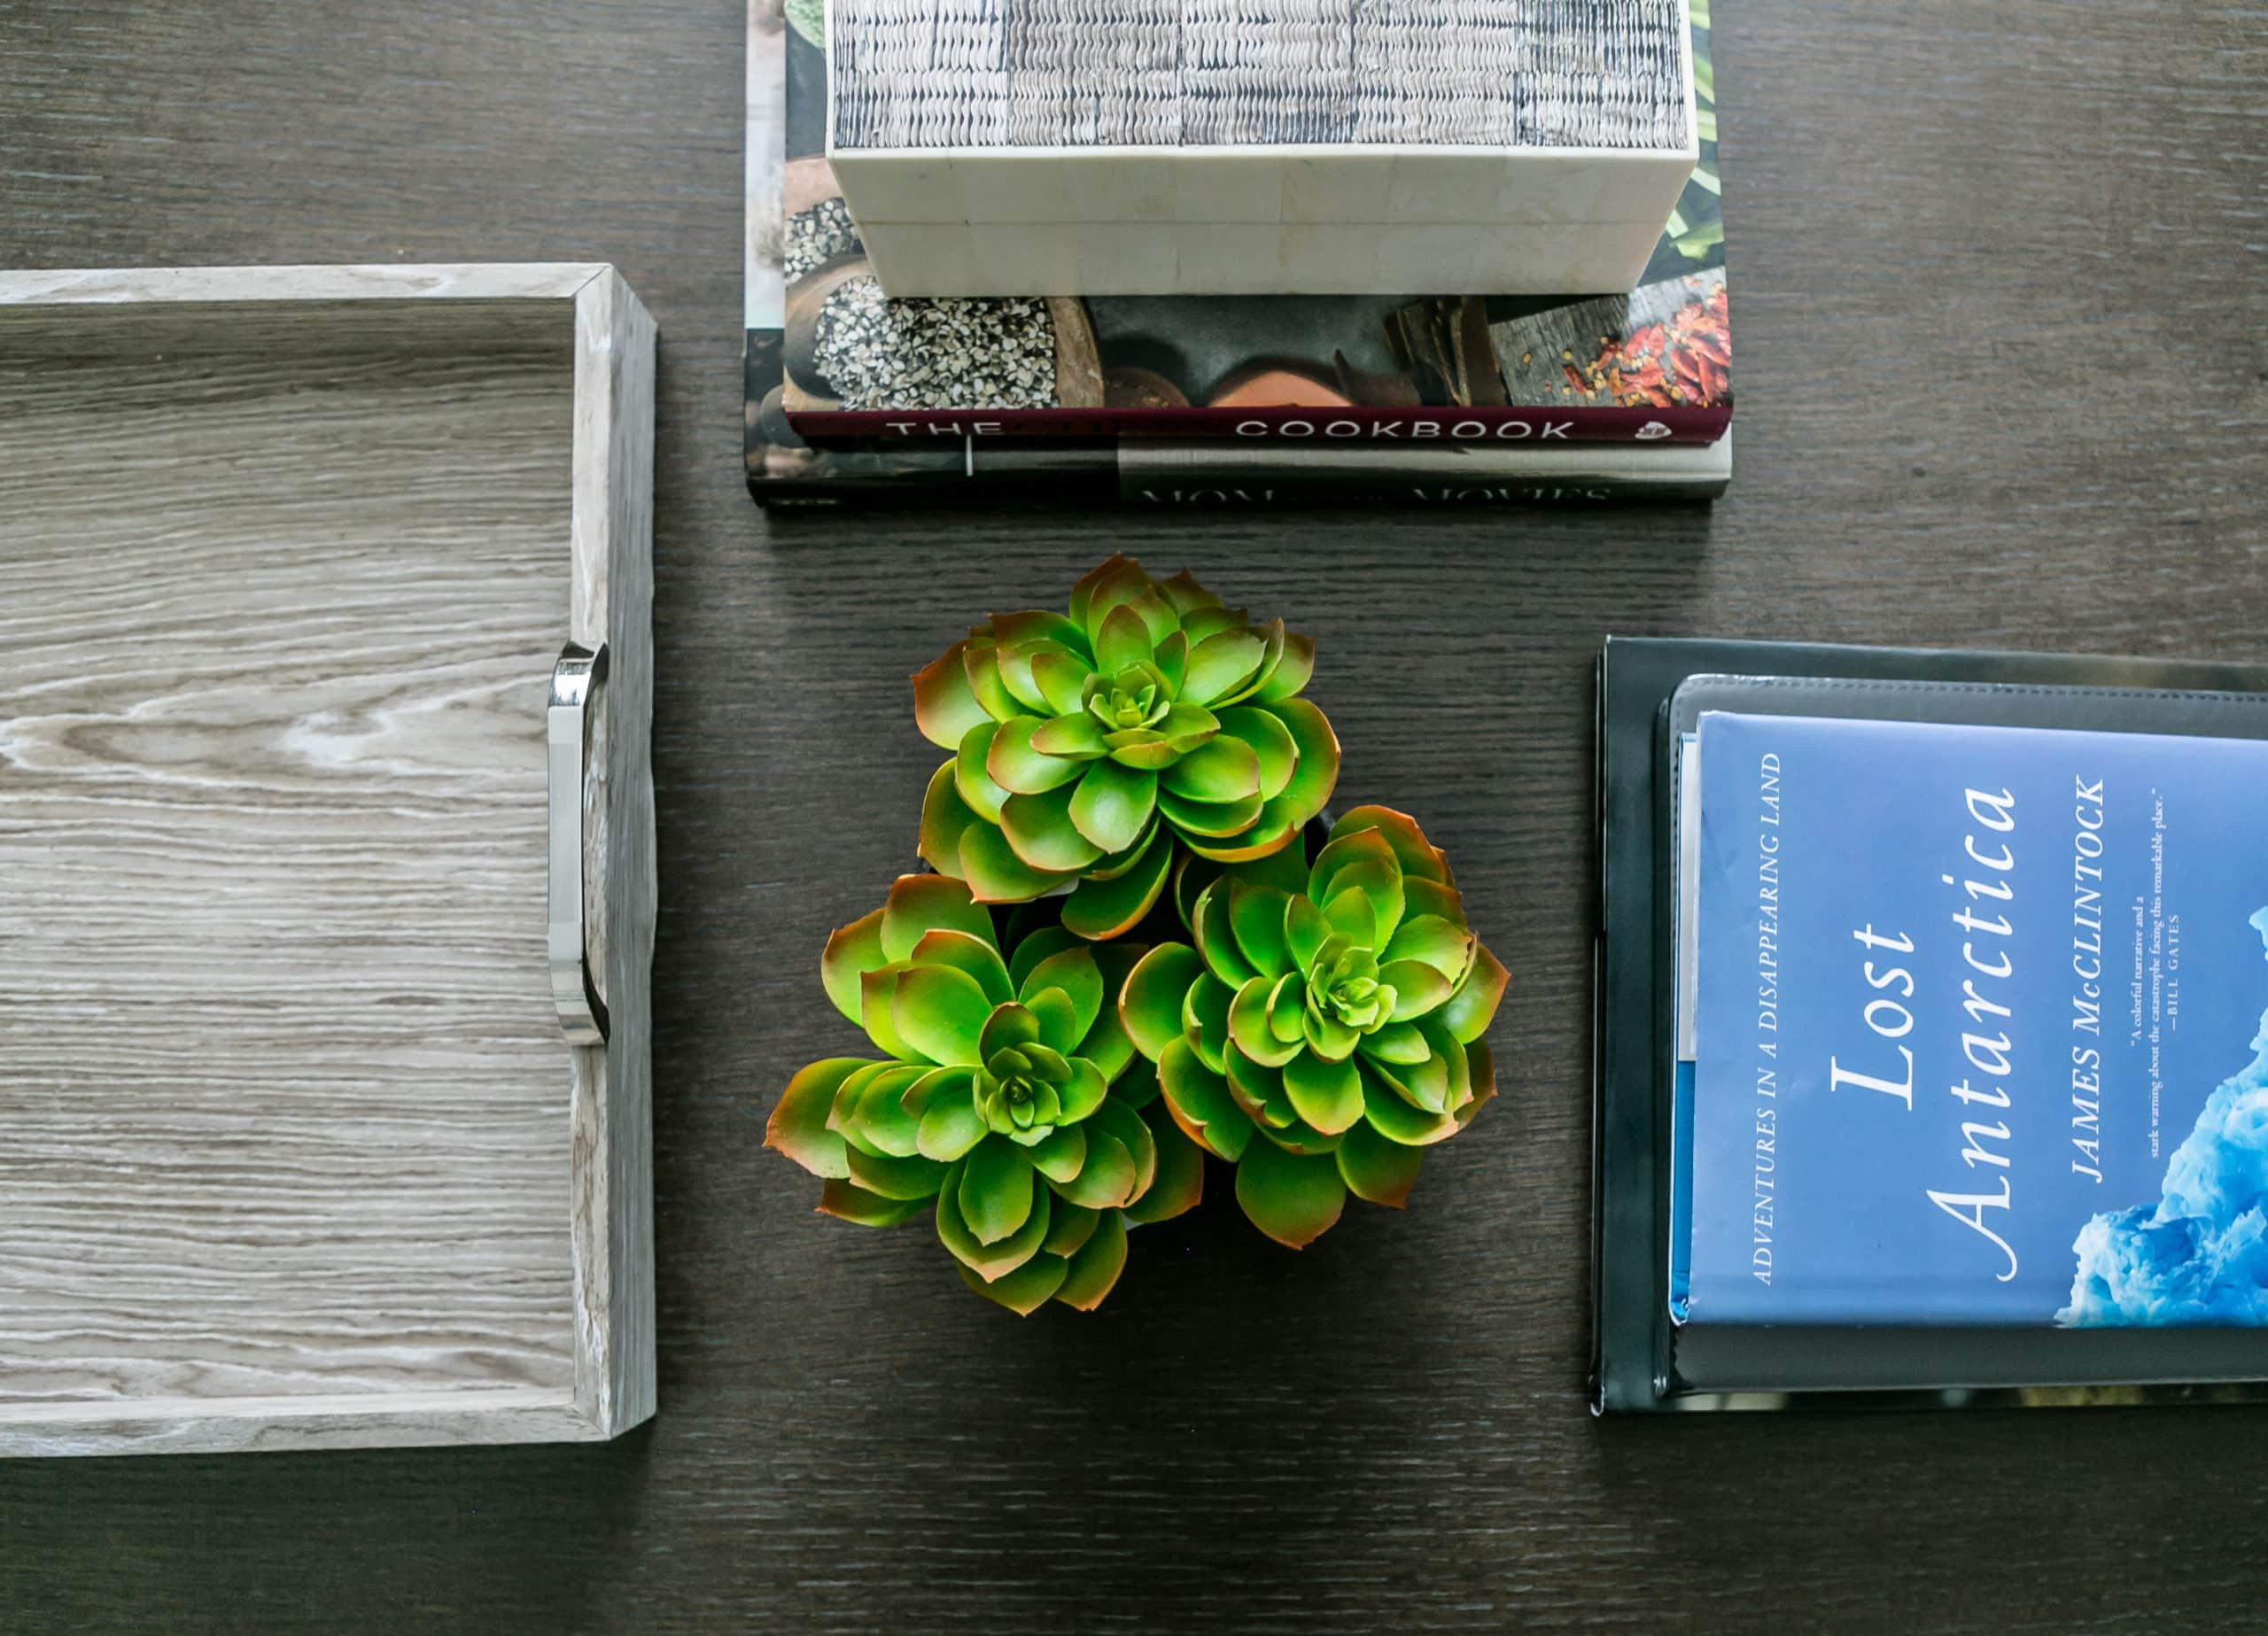 Books, flowers and a tray on a wooden table